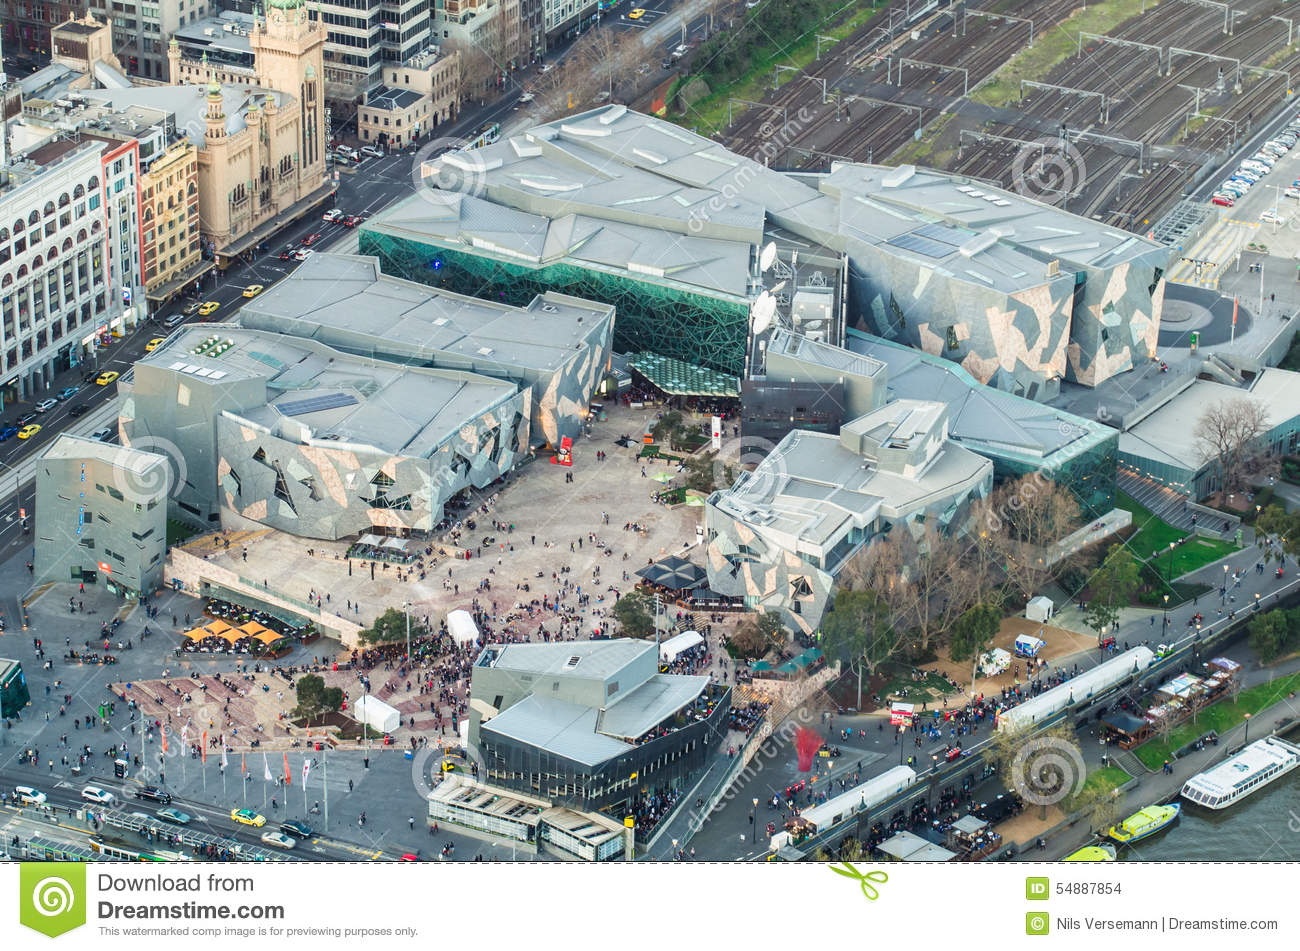 Aerial view of Federation Square in Melbourne, Australia